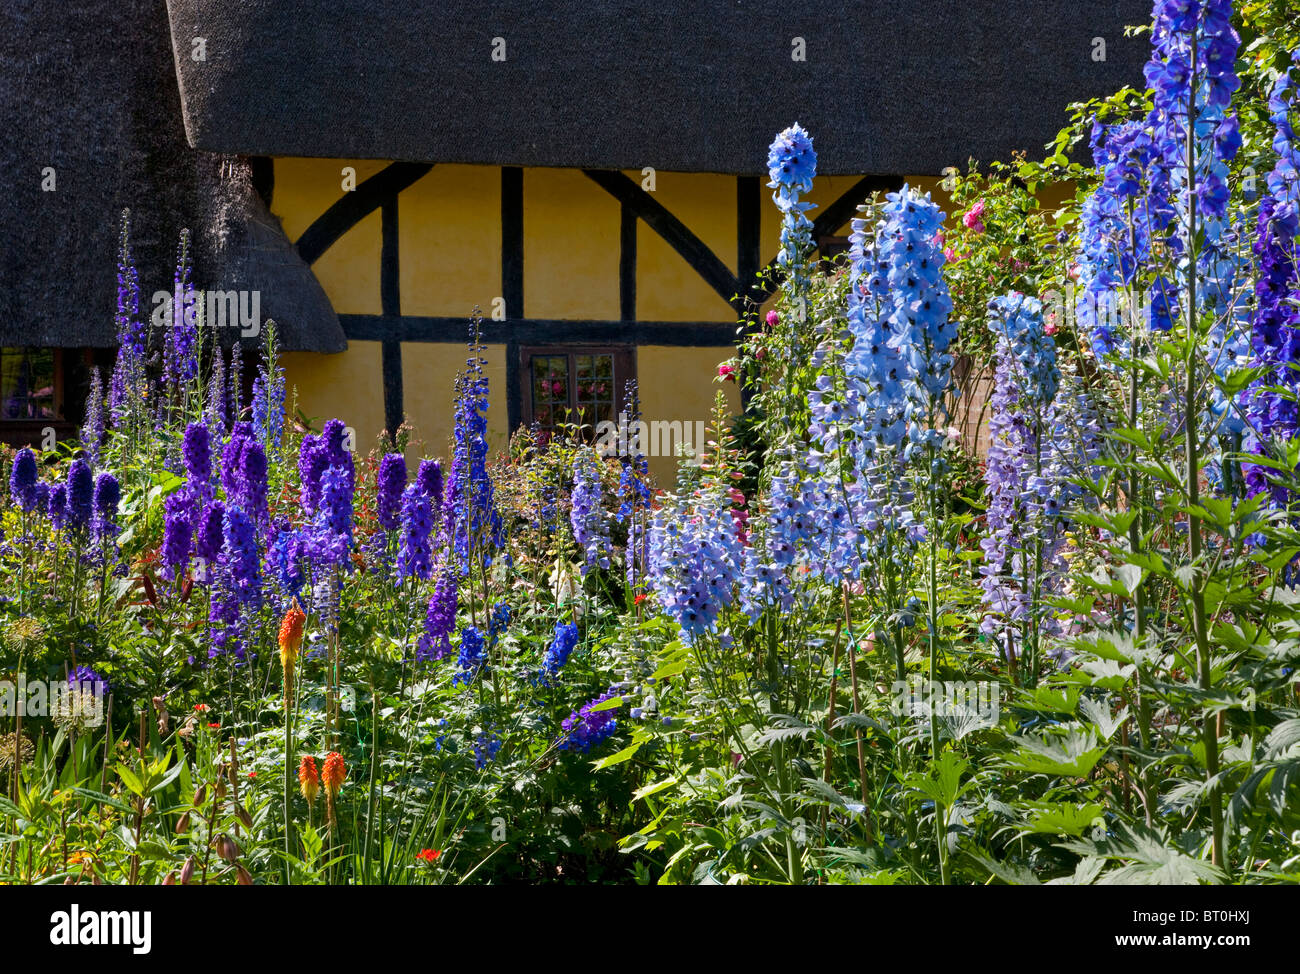 Herbaceous summer cottage garden boarder with old English half timber house in background - Stock Image